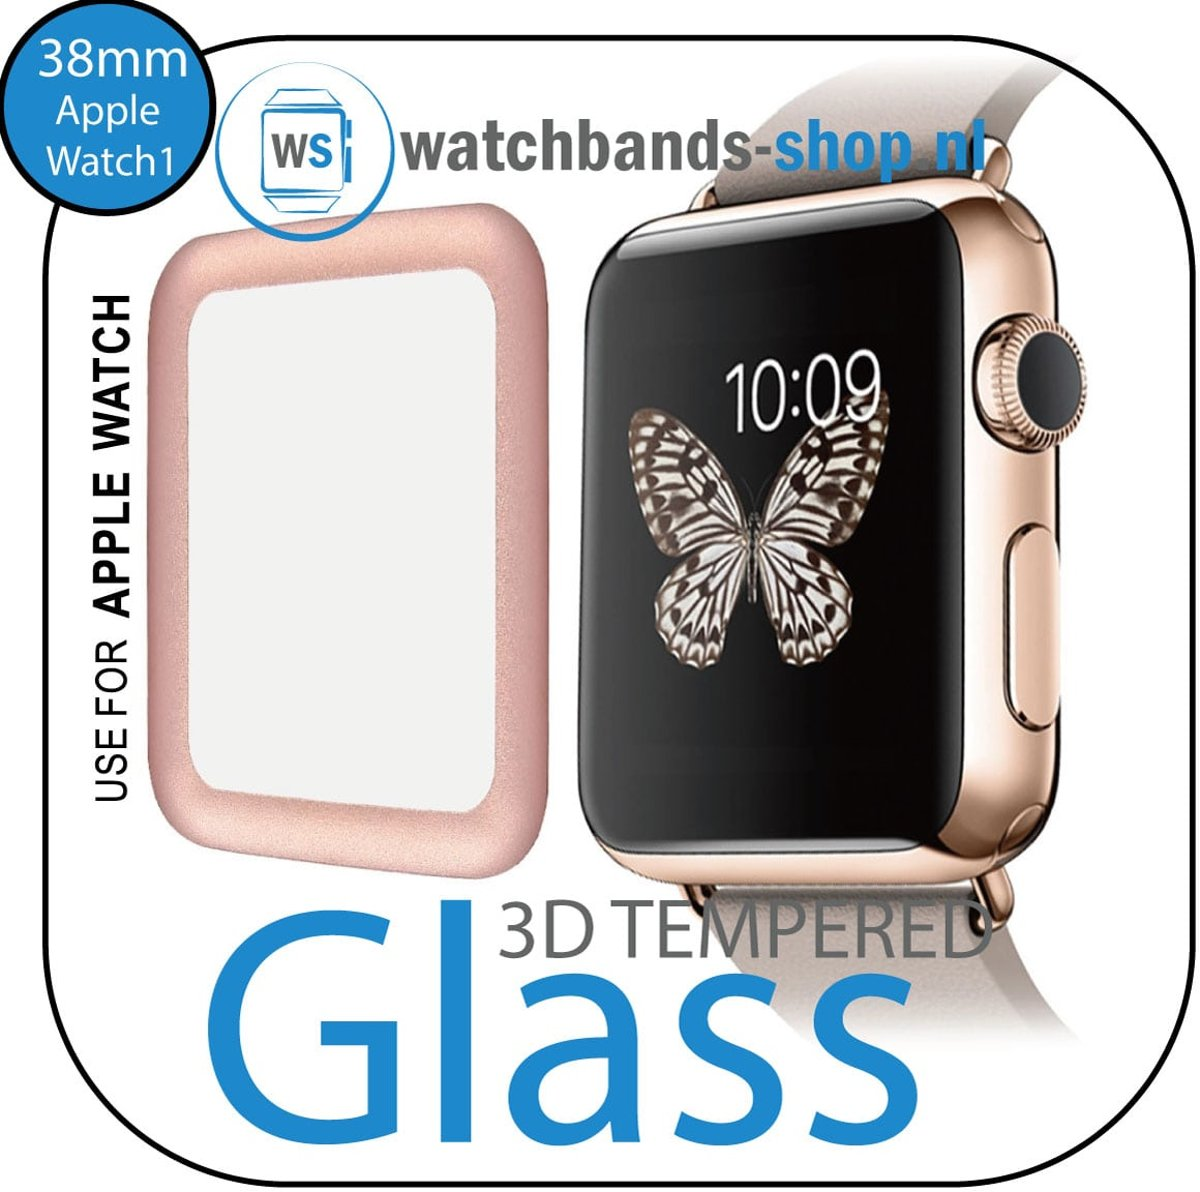 38mm full Cover 3D Tempered Glass Screen Protector For Apple watch / iWatch 1 rose gold edge Watchbands-shop.nl kopen